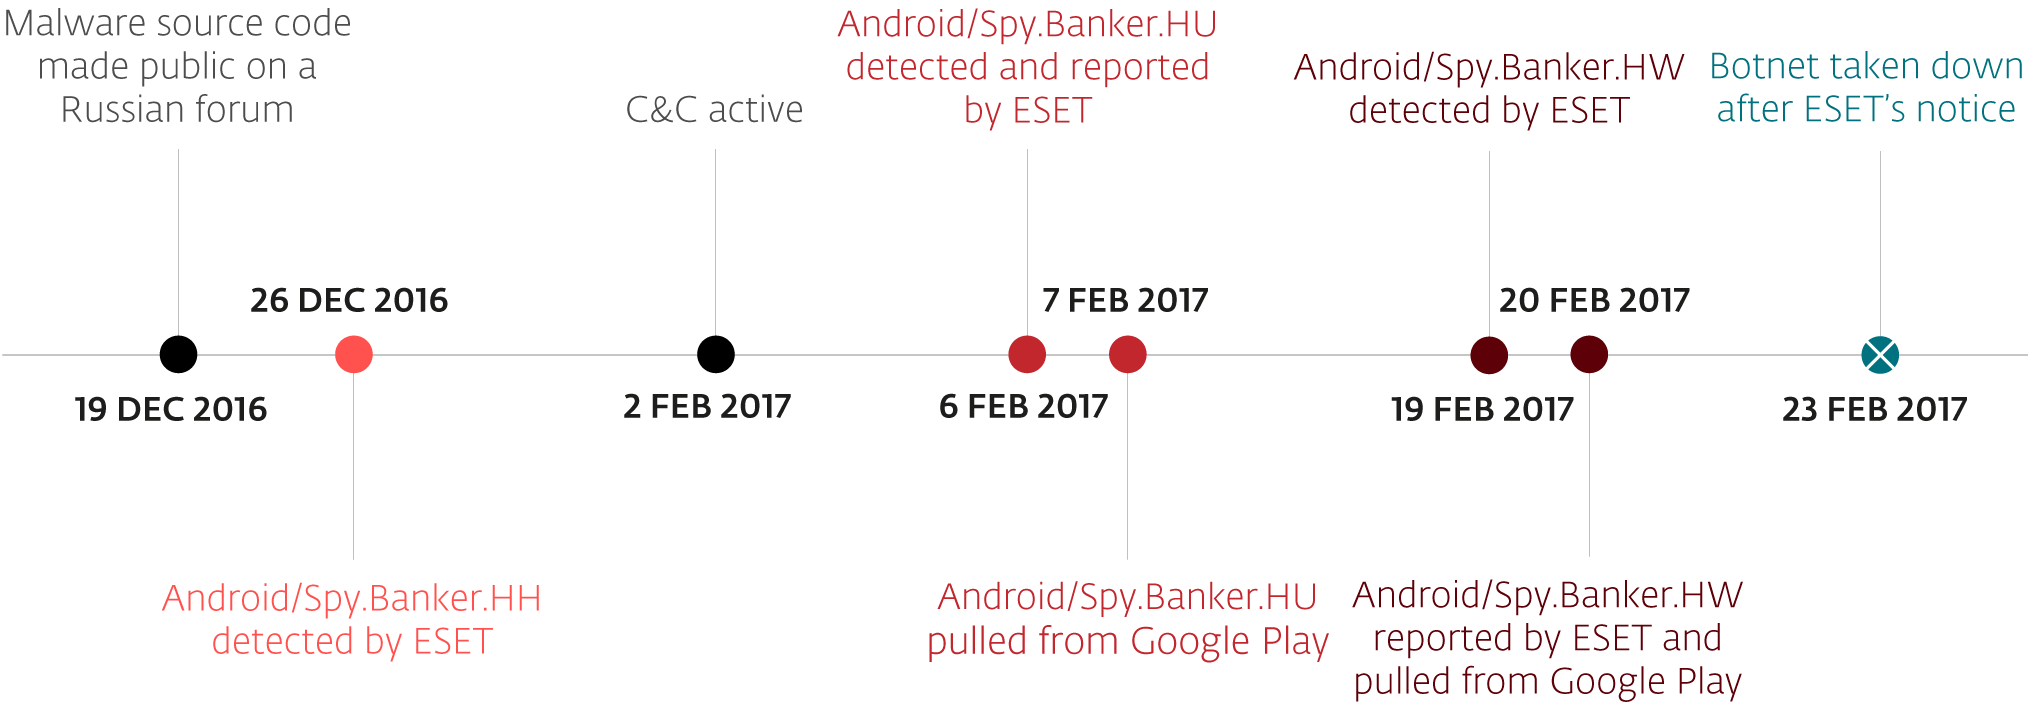 - Timeline final update - Released Android malware source code used to run a banking botnet